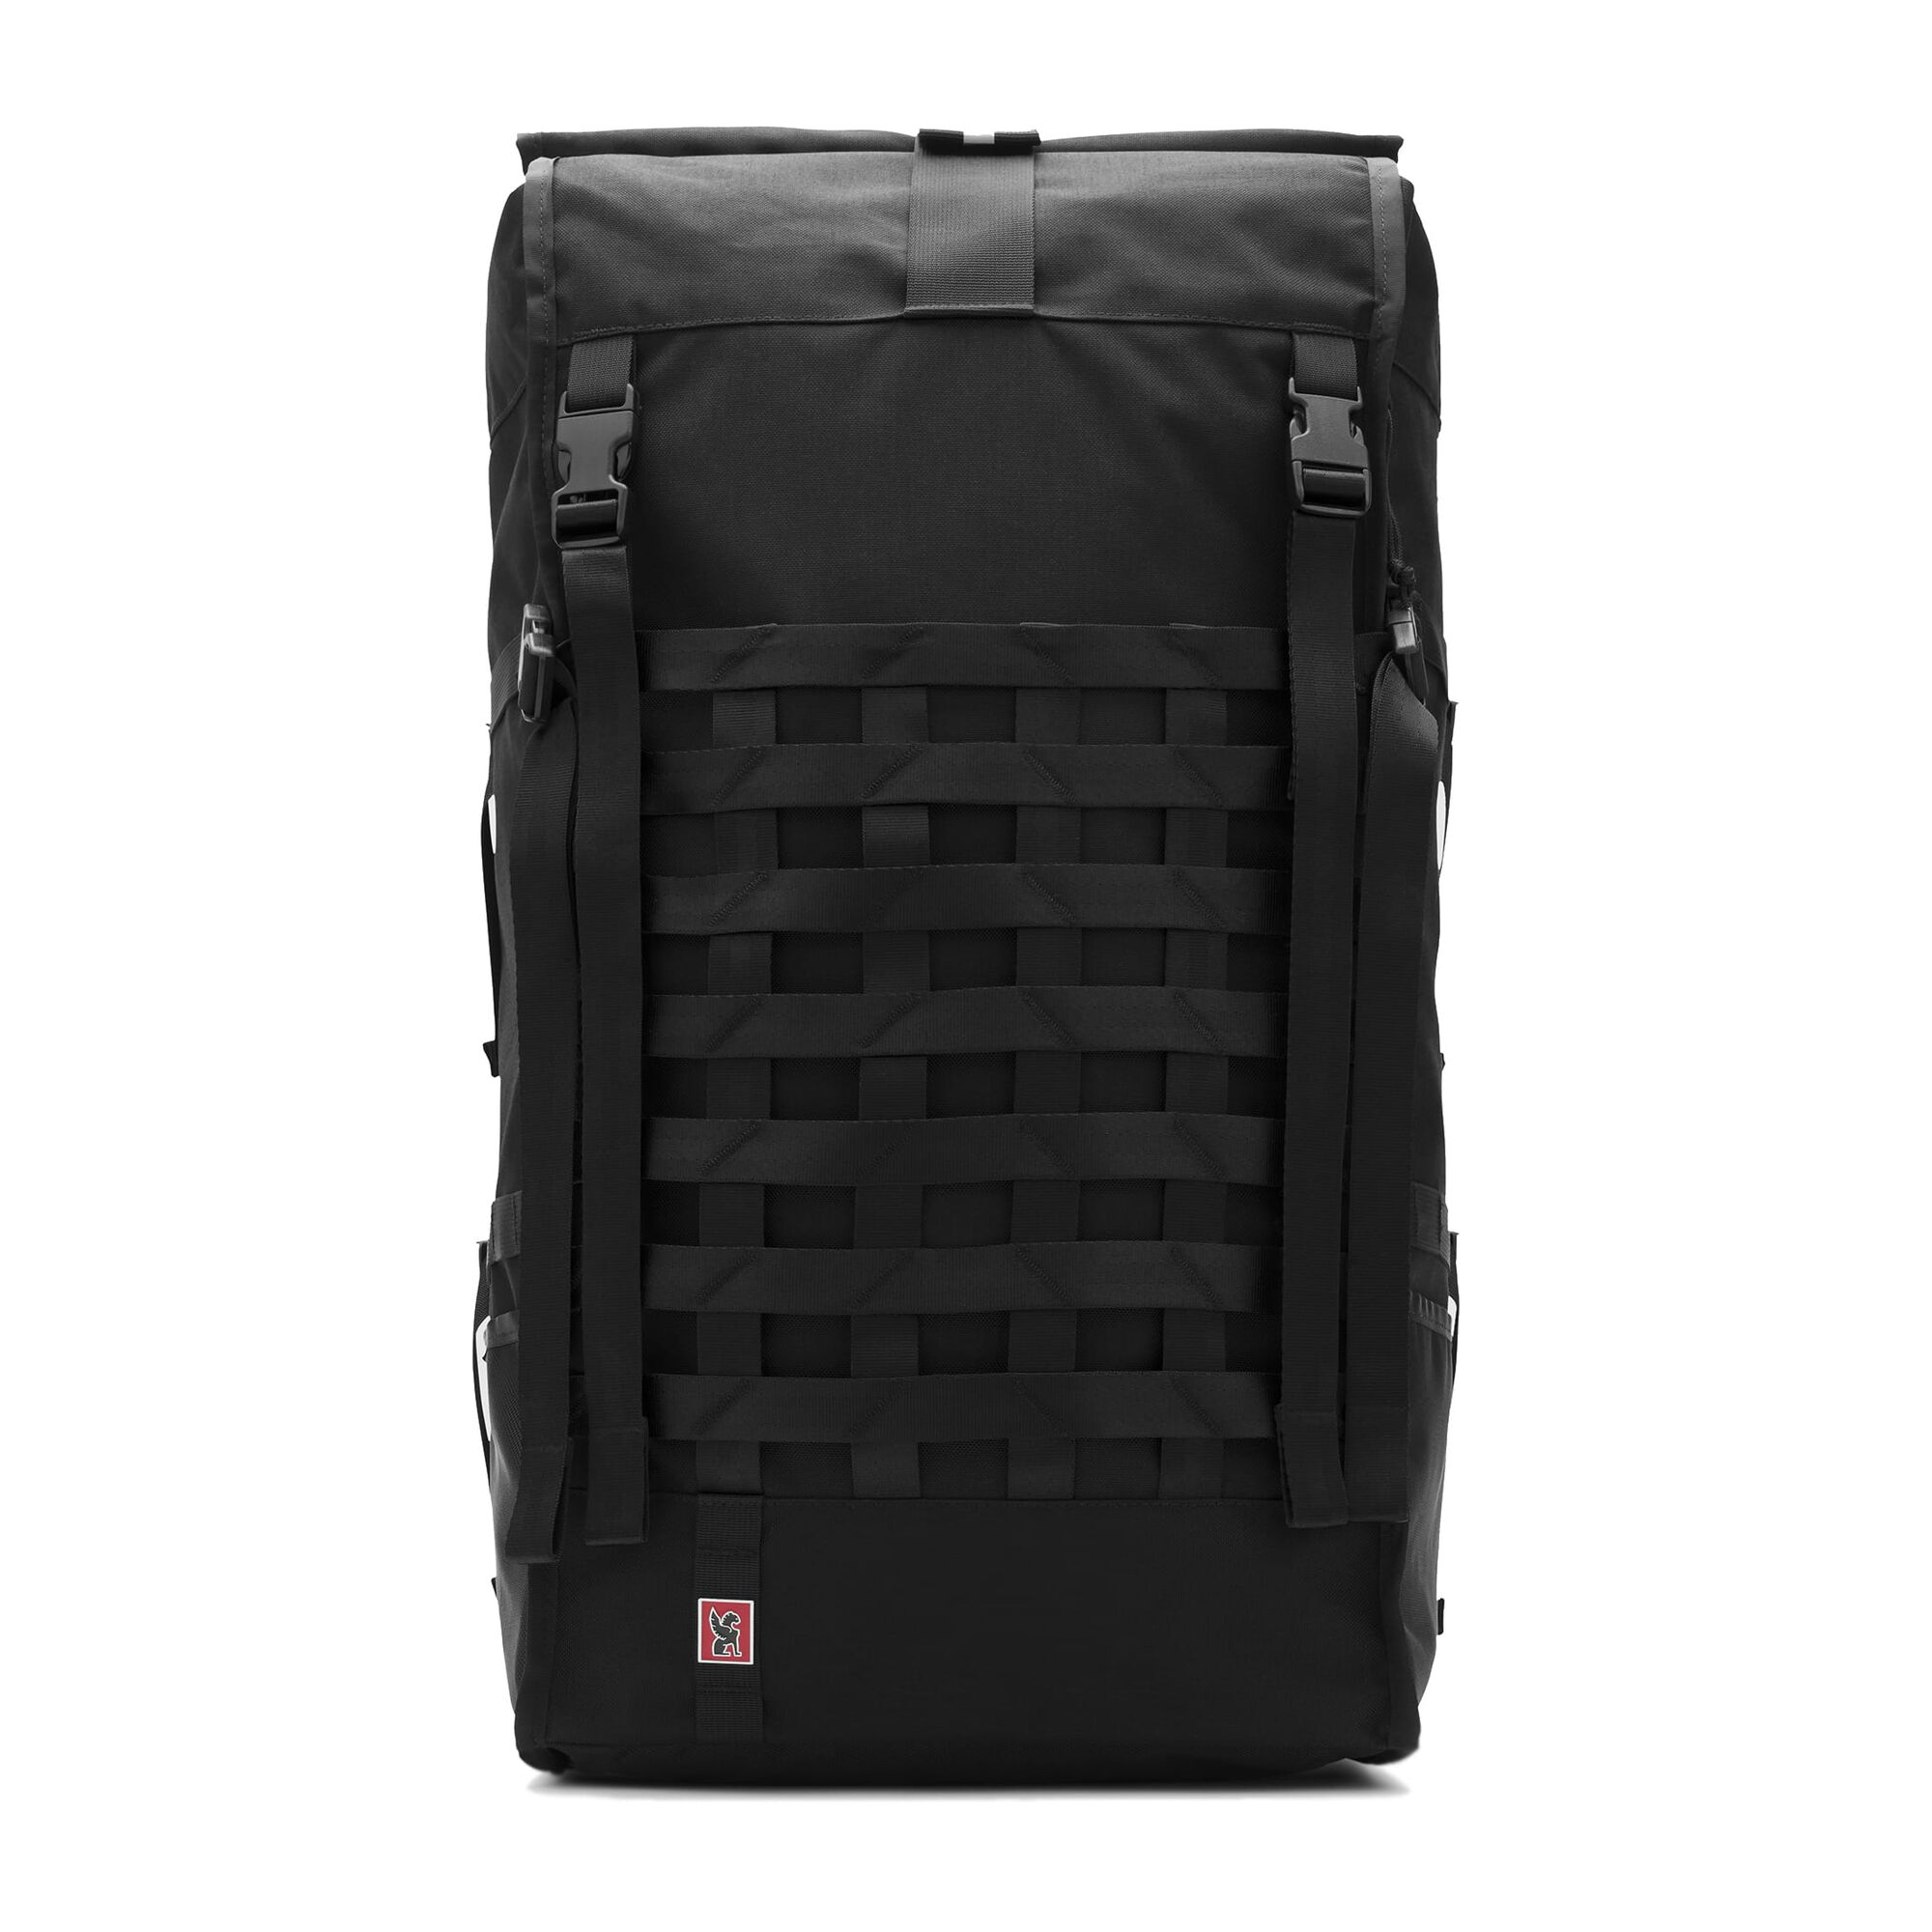 "4113427e6795 Barrage Pro Backpack - A Bag Built for the City - 34""h x 14""w x 12""d ..."